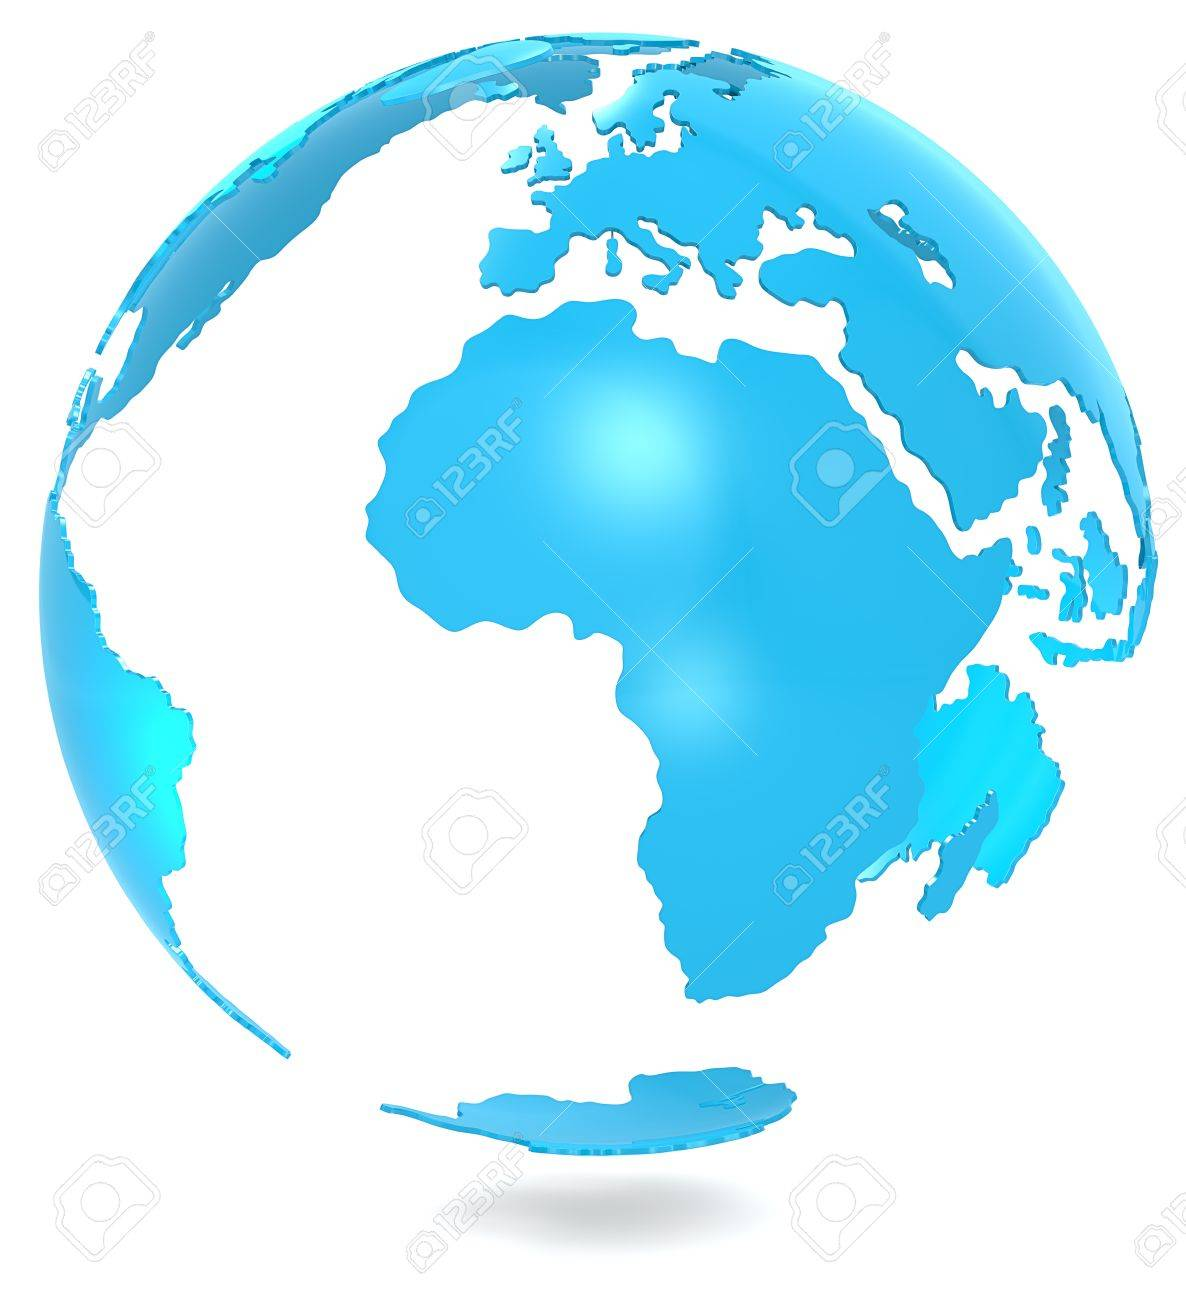 Abstract 3d Blue Earth Model. Isolated. Stock Photo, Picture And ...